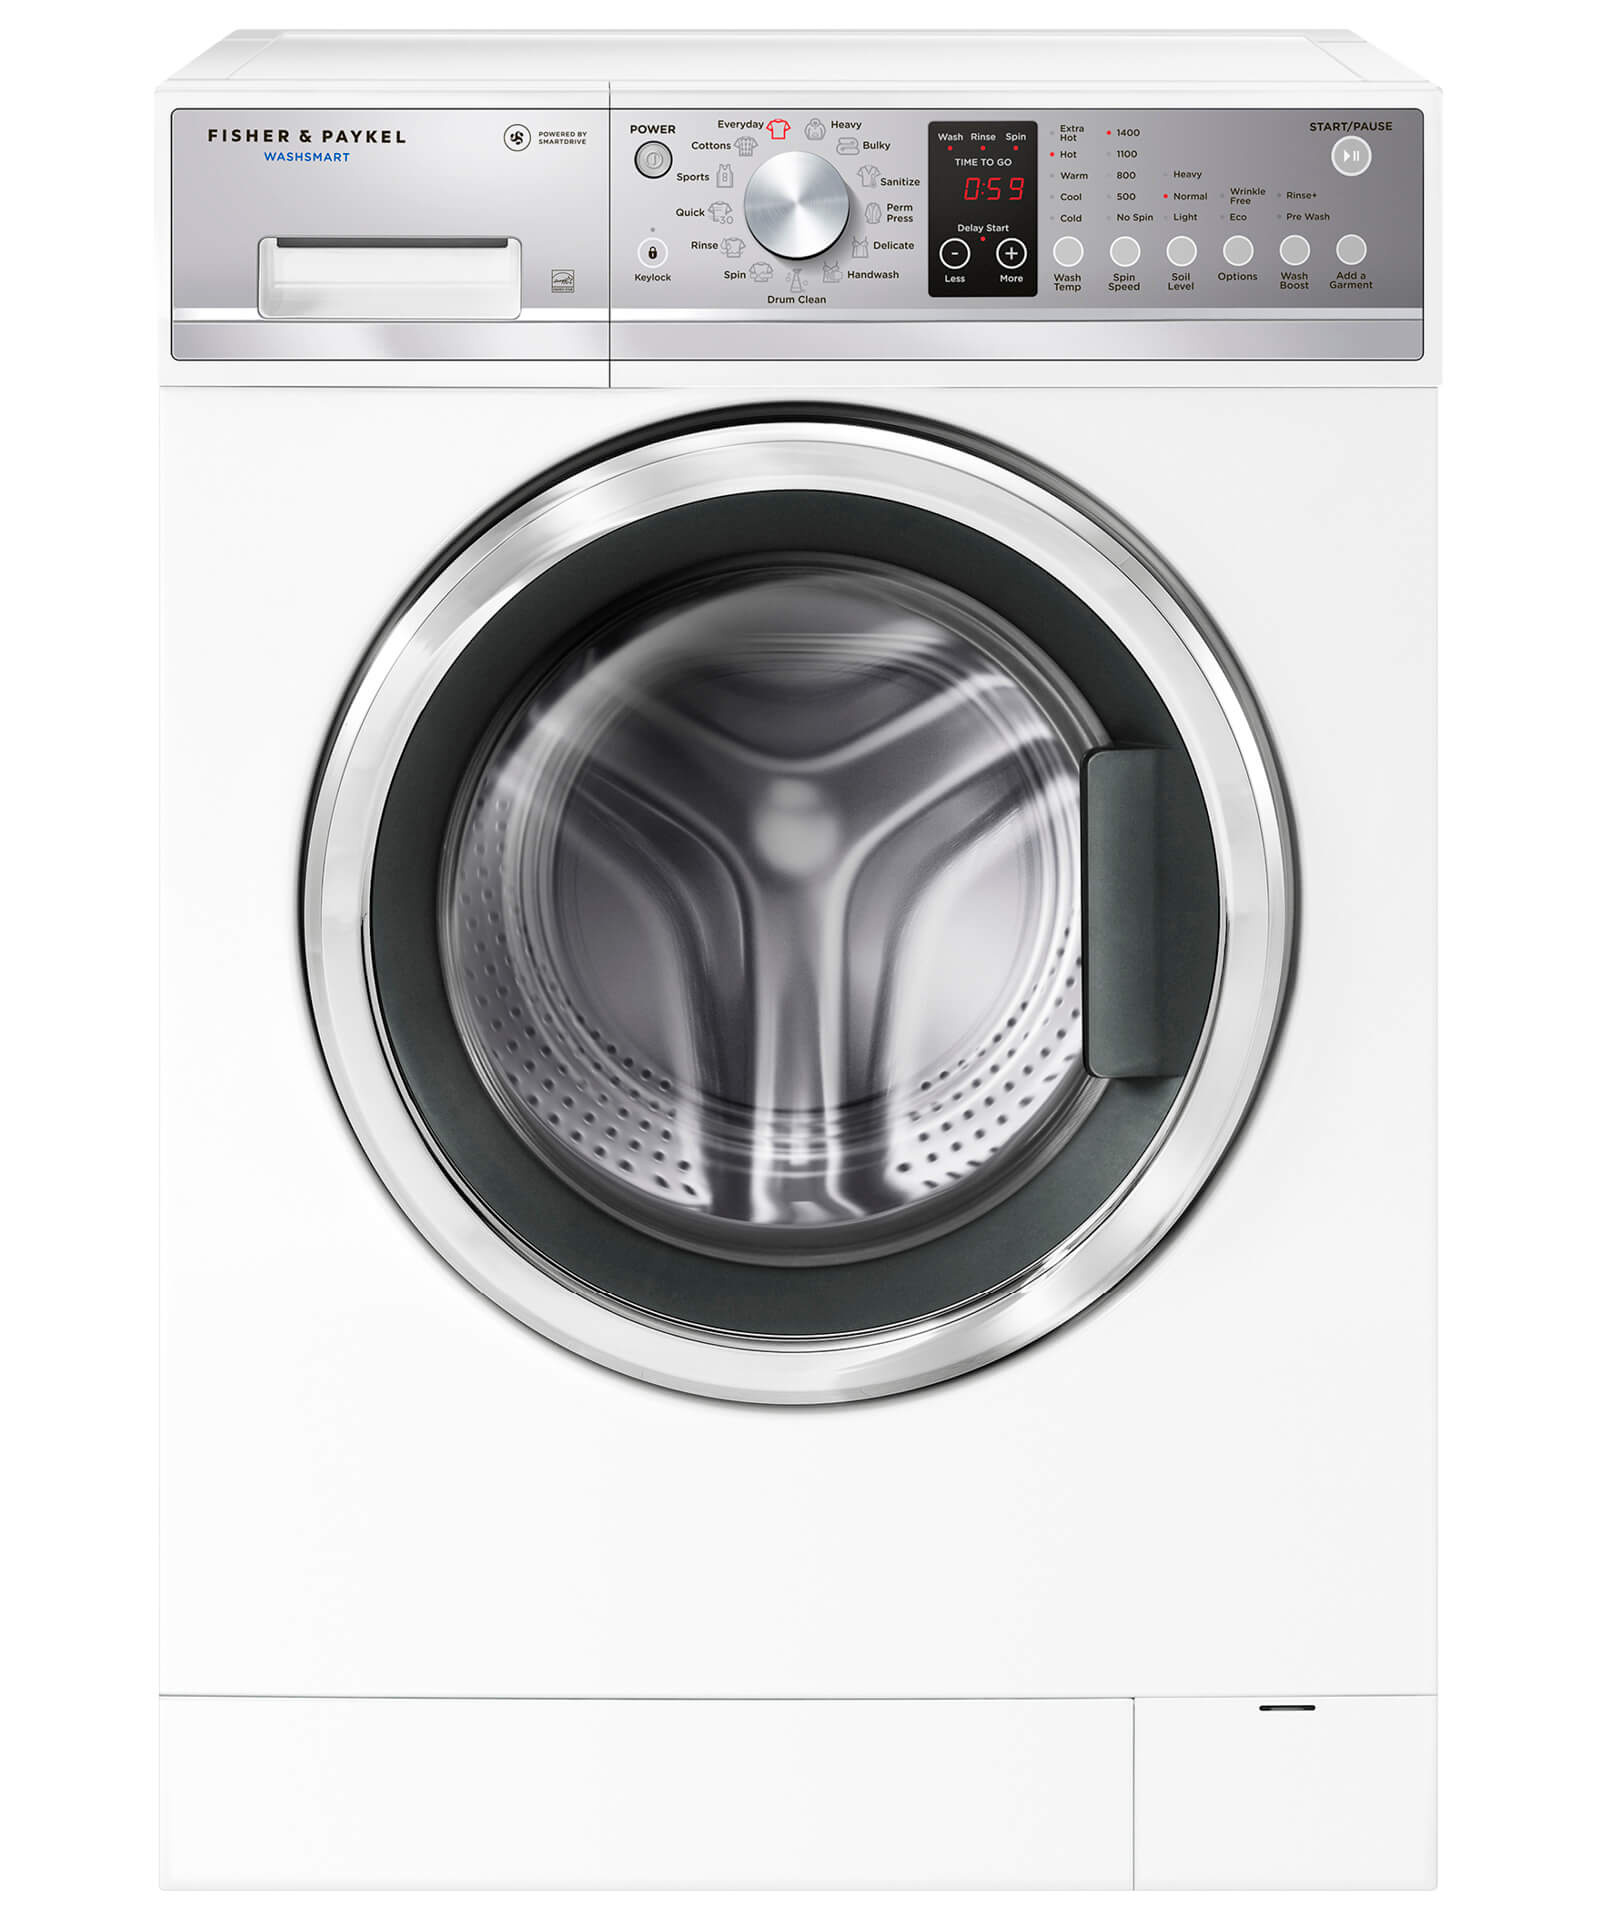 Model: WH2424P1   Fisher and Paykel WashSmart™ Front Load Washer, 2.4 cu ft, SmartDrive™